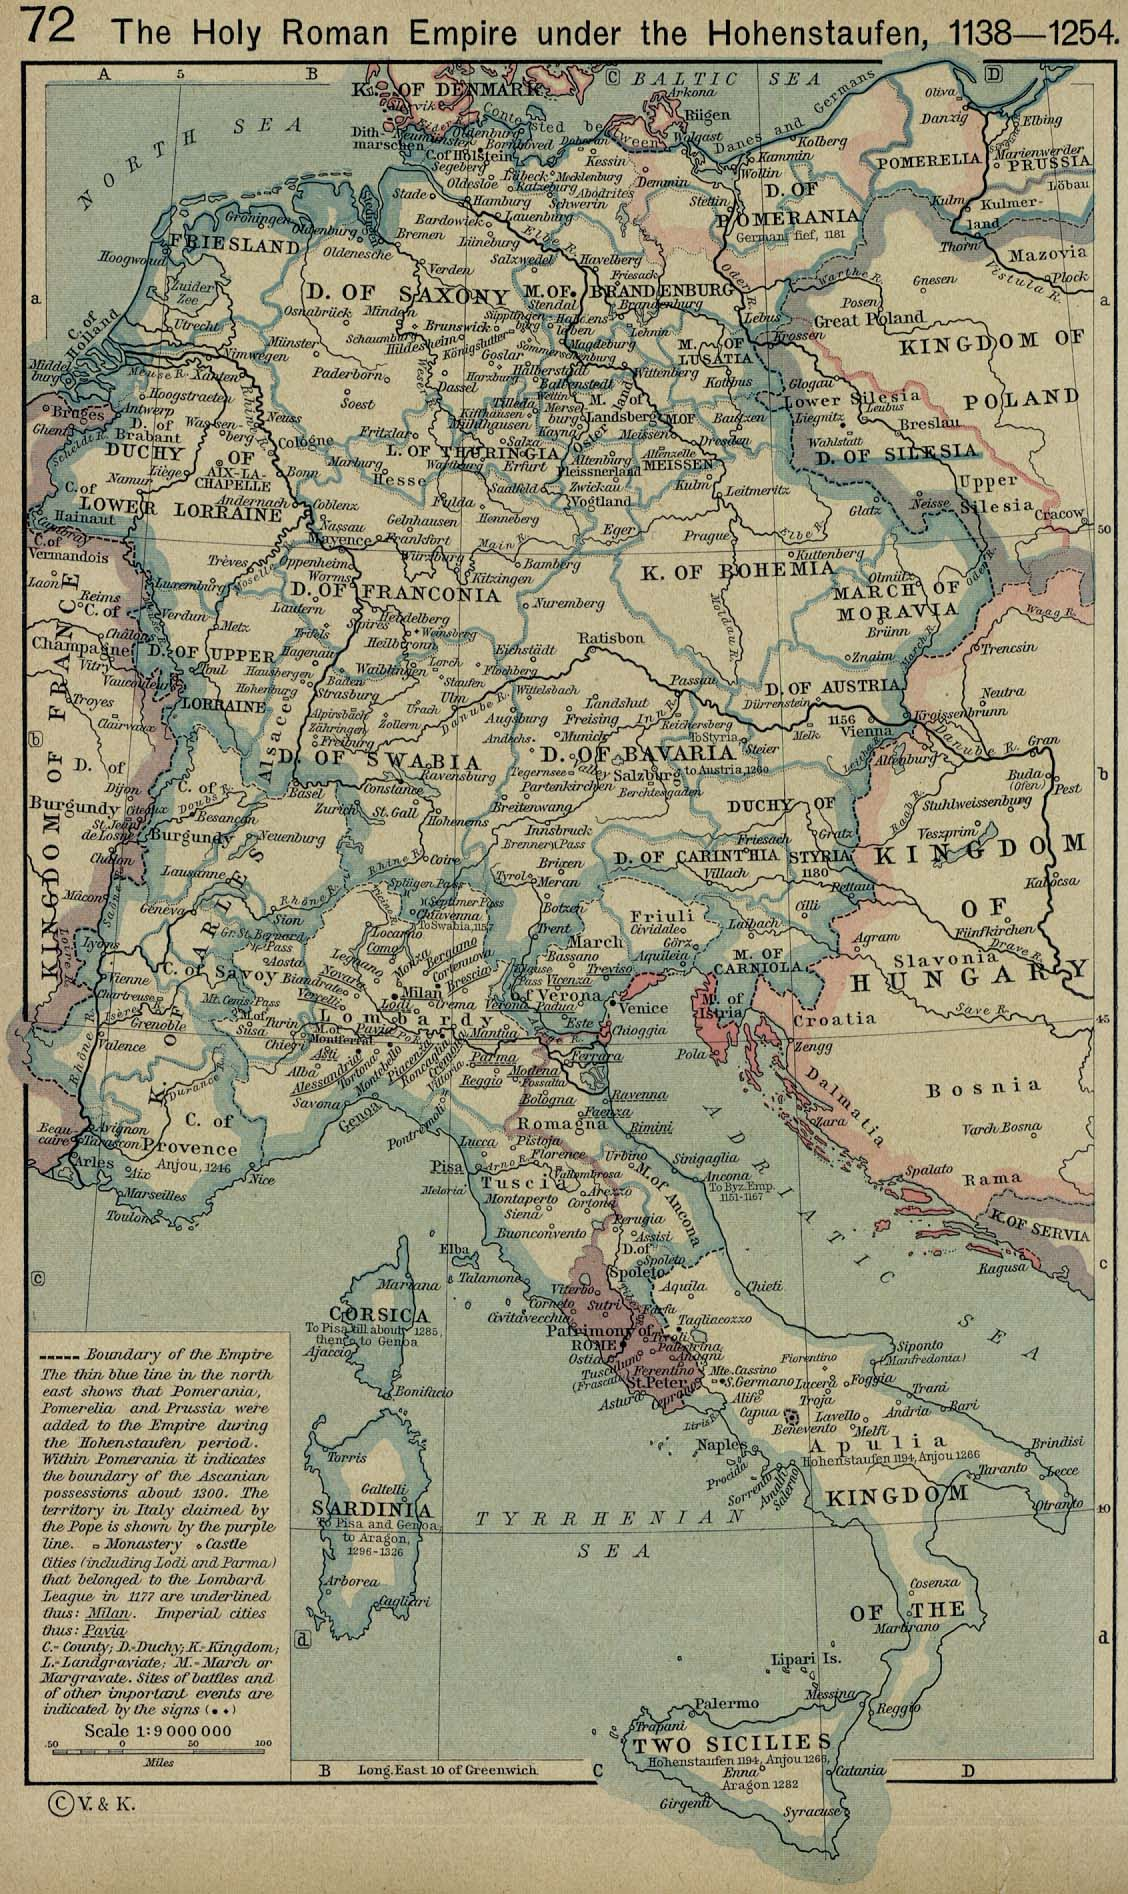 Map Of The Holy Roman Empire 1138 1254